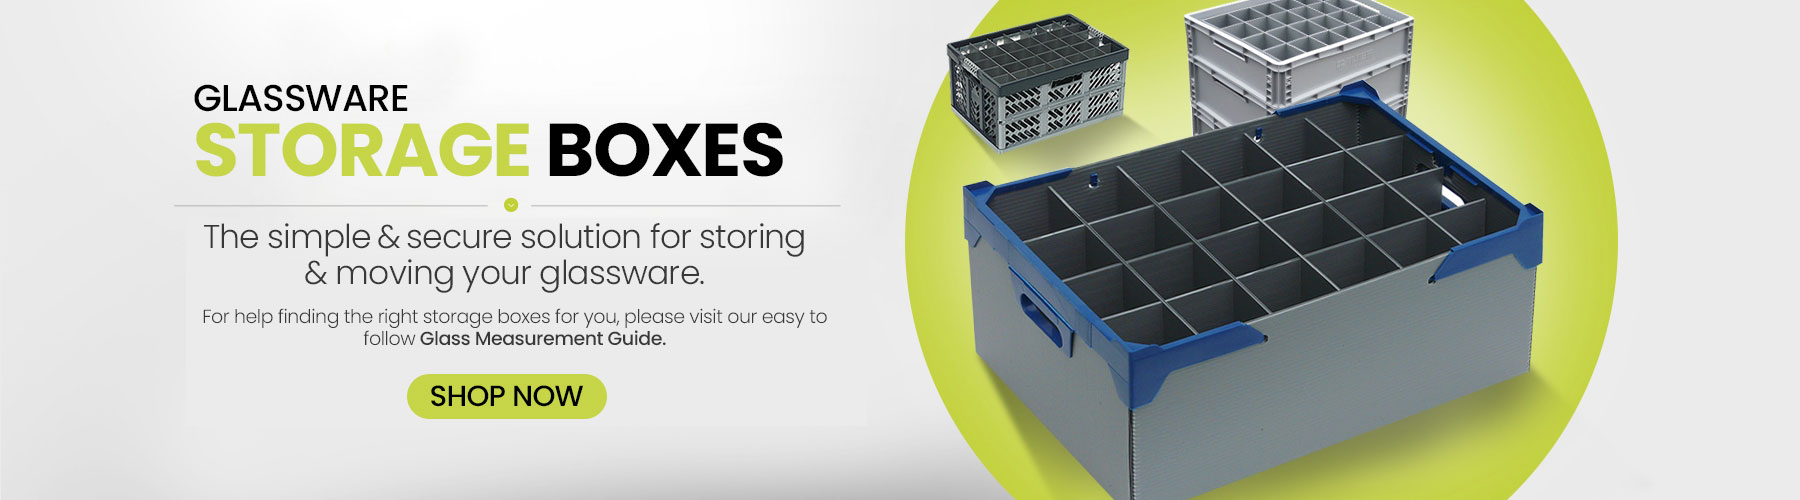 Glassware Storage Boxes, Storage Crates, Pack, Stack, Protect Deliver your Glasses